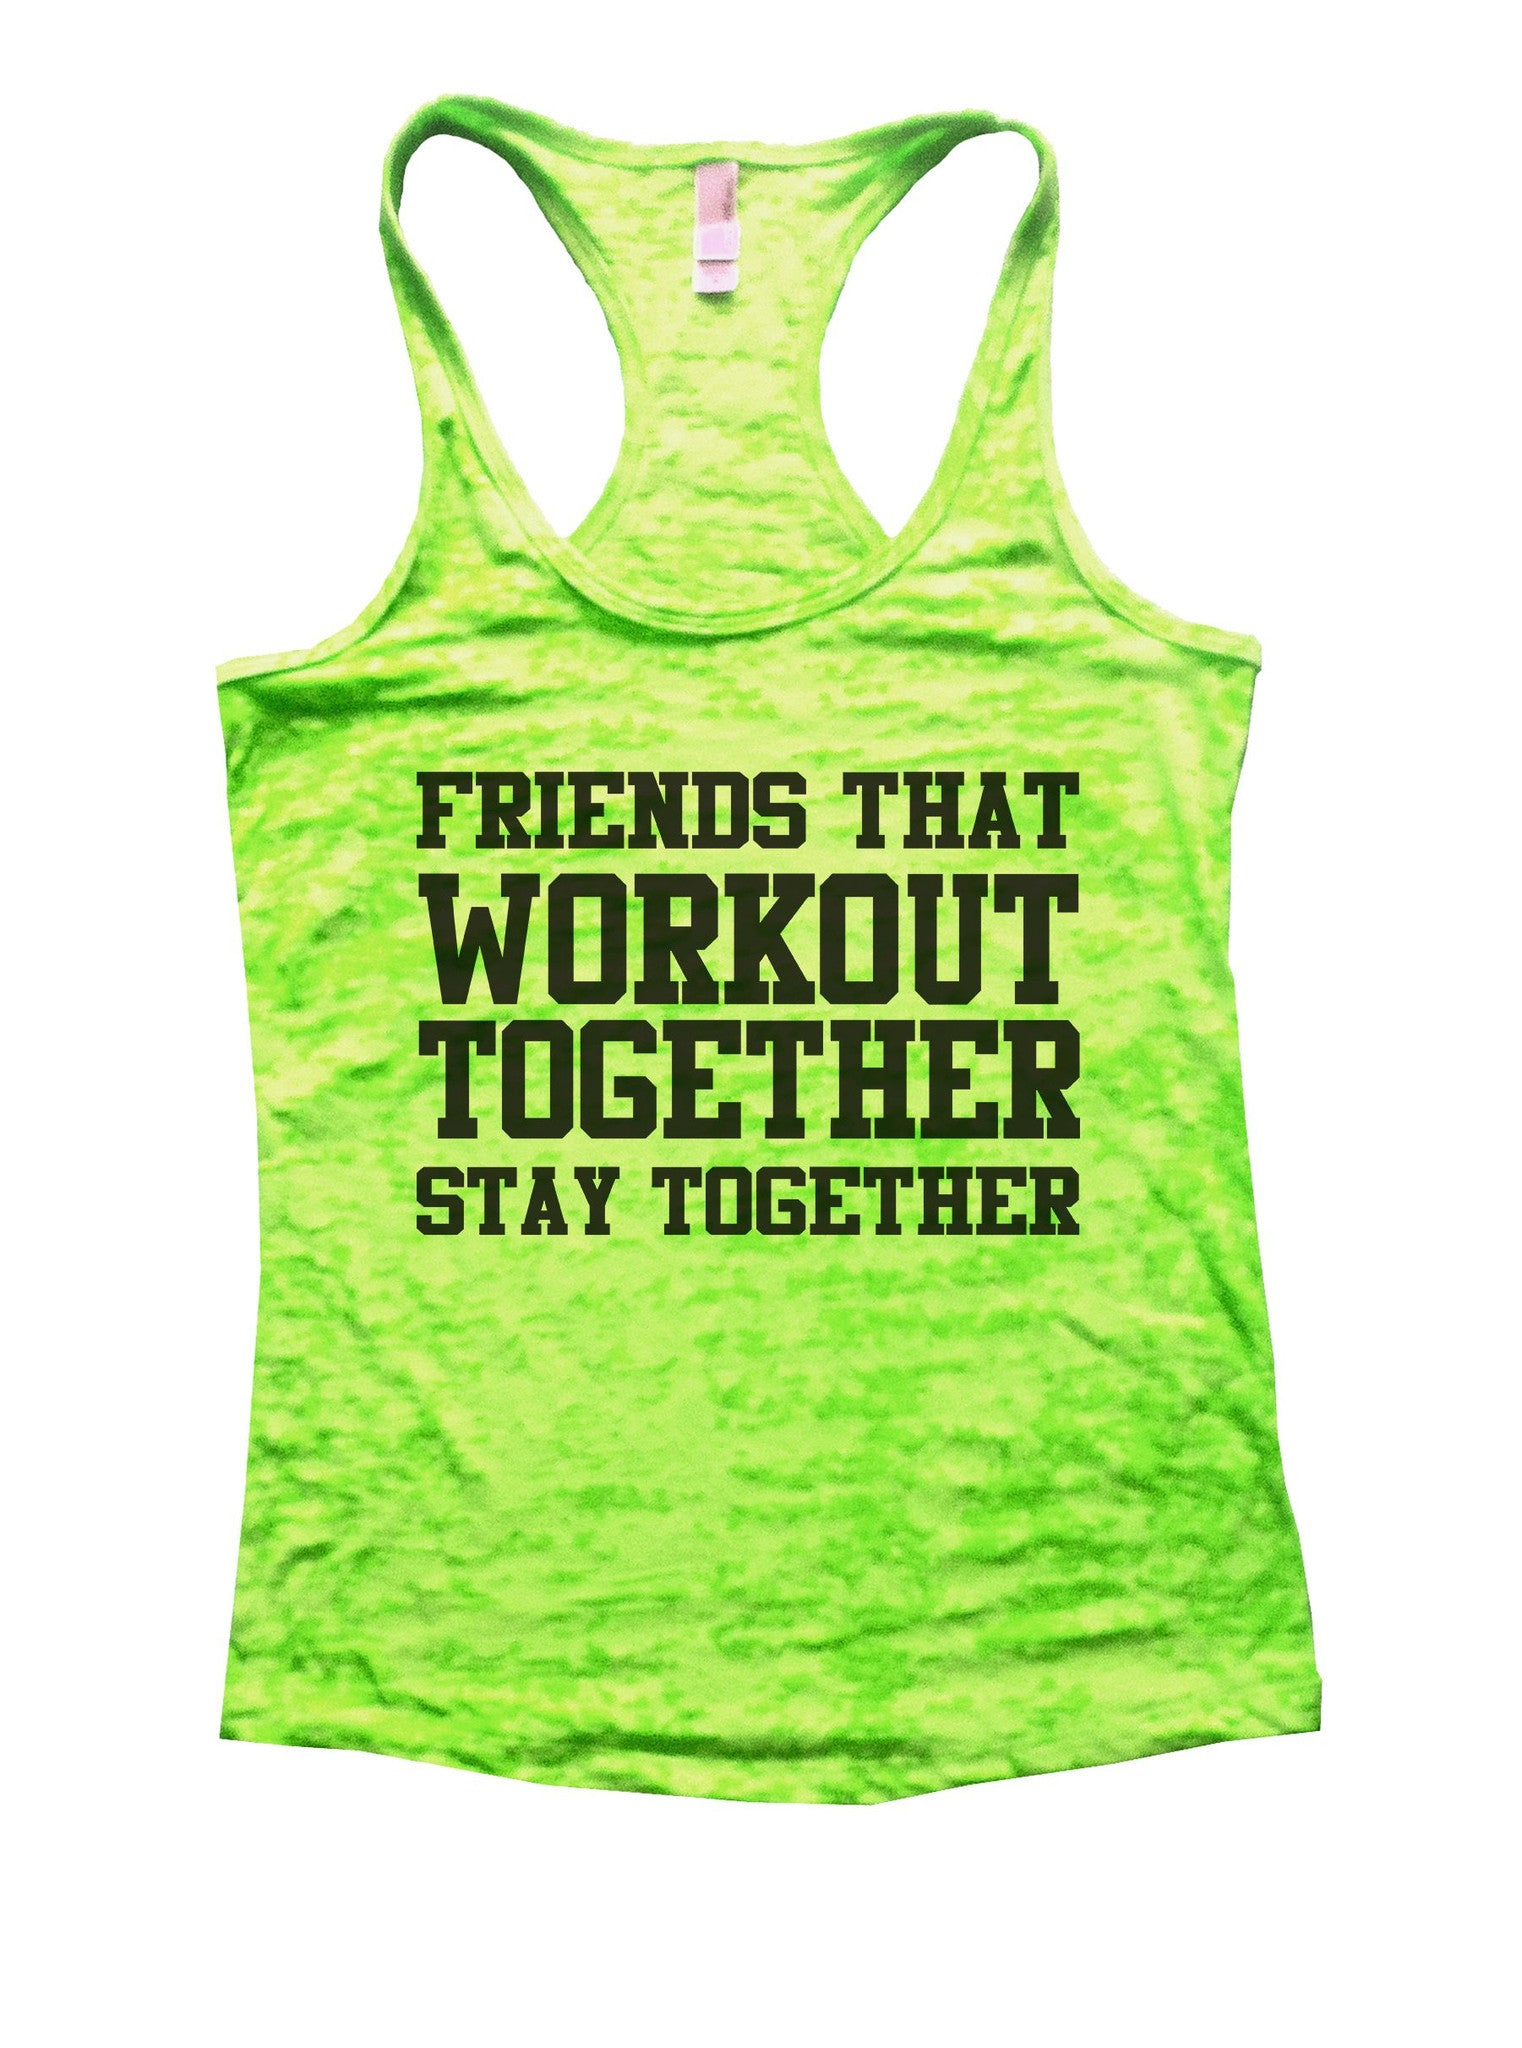 Friends That Workout Together Stay Together Burnout Tank Top By BurnoutTankTops.com - 847 - Funny Shirts Tank Tops Burnouts and Triblends  - 2